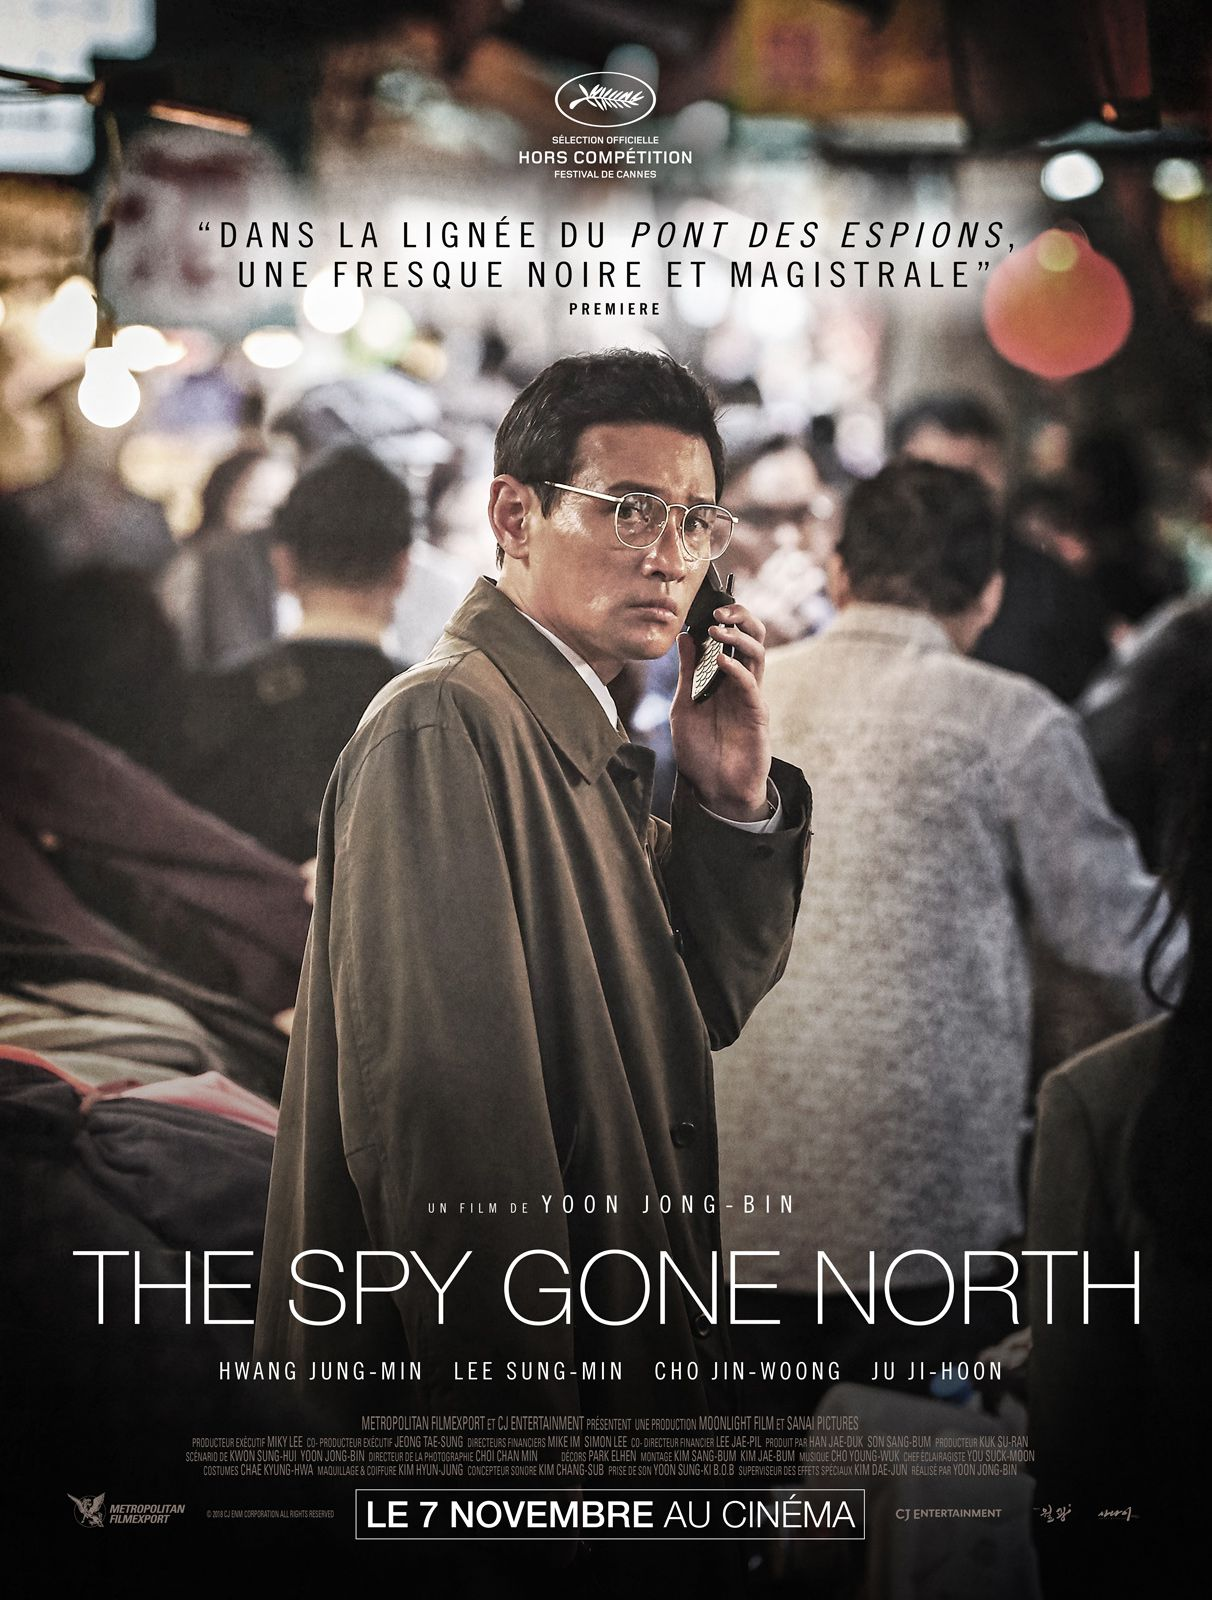 The Spy Gone North - Film (2018) streaming VF gratuit complet